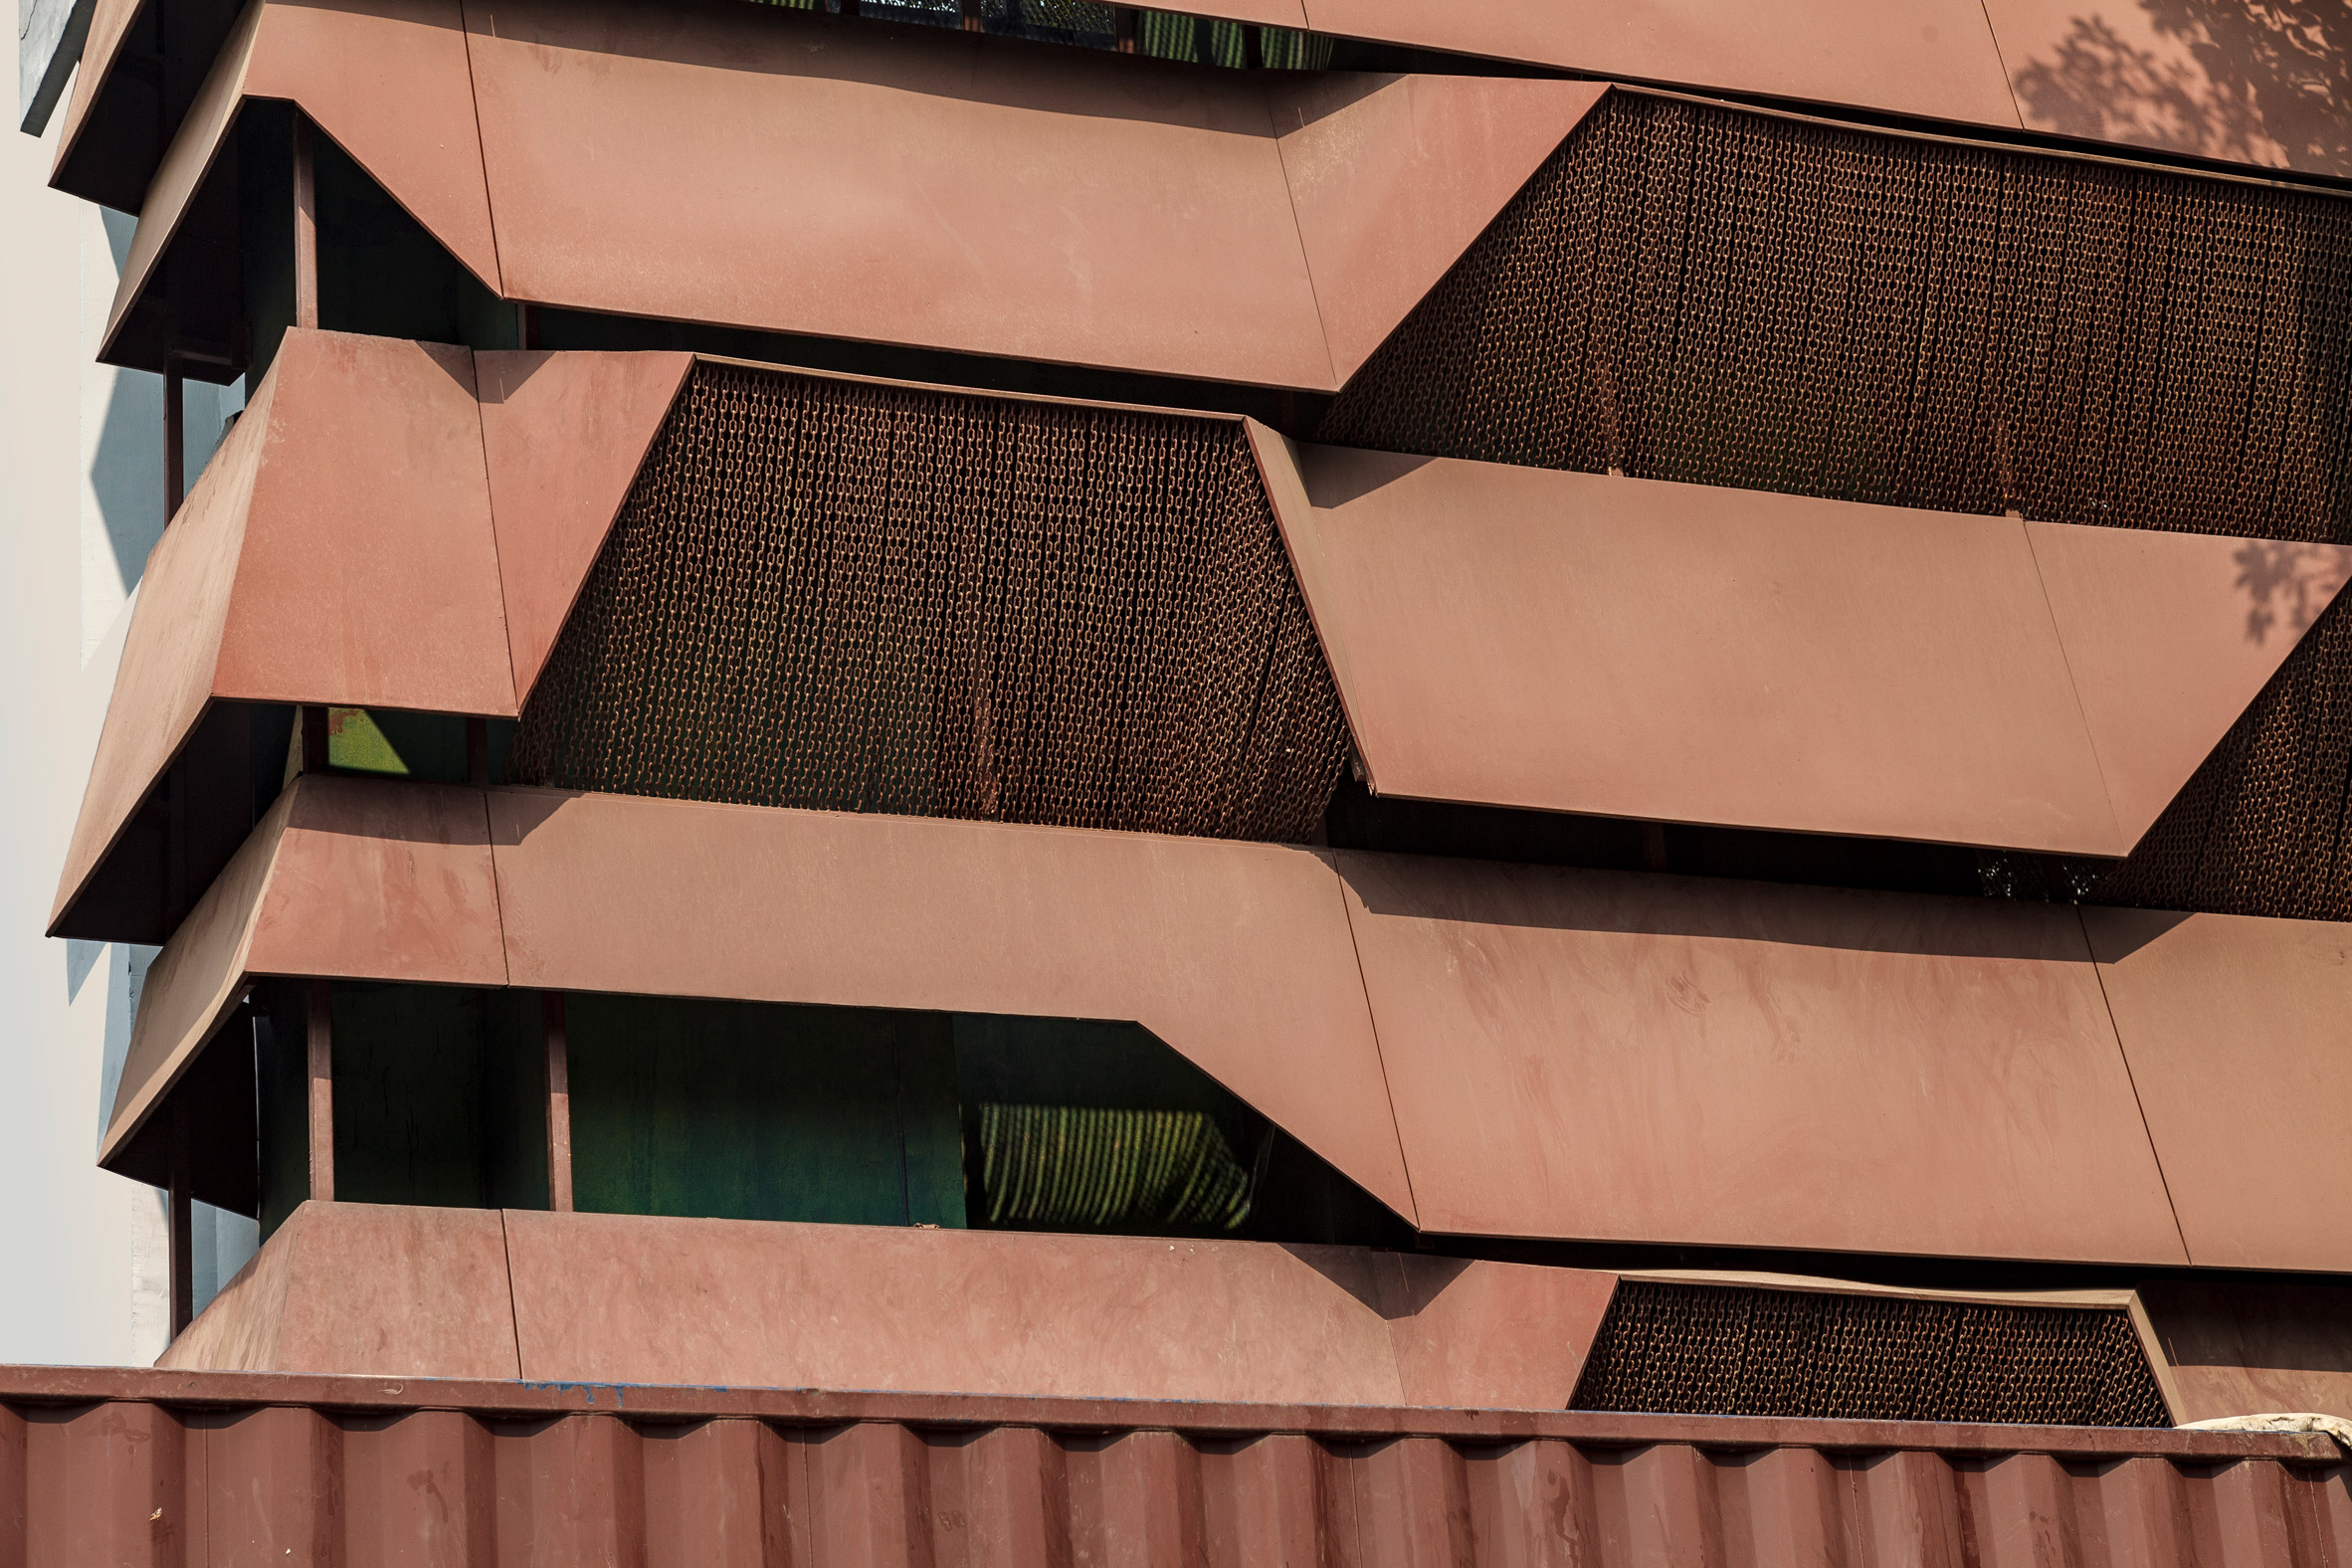 Chain screens also have a weathered look by Architecture Discipline